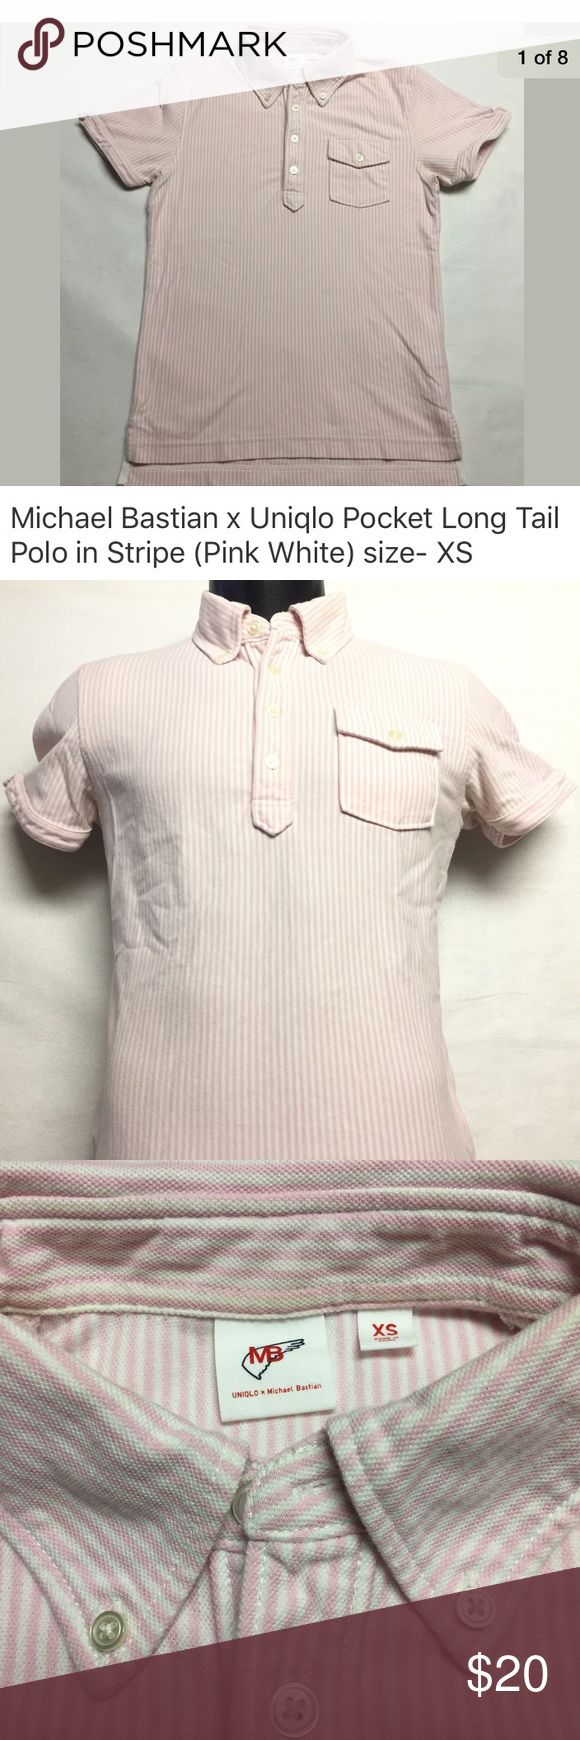 "MICHAEL BASTIAN x UNIQLO pocket stripe polo shirt MICHAEL BASTIAN x UNIQLO short sleeved long tail pocket pique polo shirt in Stripe (Pink & White).  Button down collar. Pictures are that of the actual shirt you will receive. NO rips, holes, stains or missing buttons. Laundered, clean and ready to ship.  Size on tag: XS (please compare measurements with a shirt that fits you well to ensure proper fit).  17"" from armpit to armpit 24"" from the shoulder to hem. Uniqlo x Michael Bastian Shirts…"